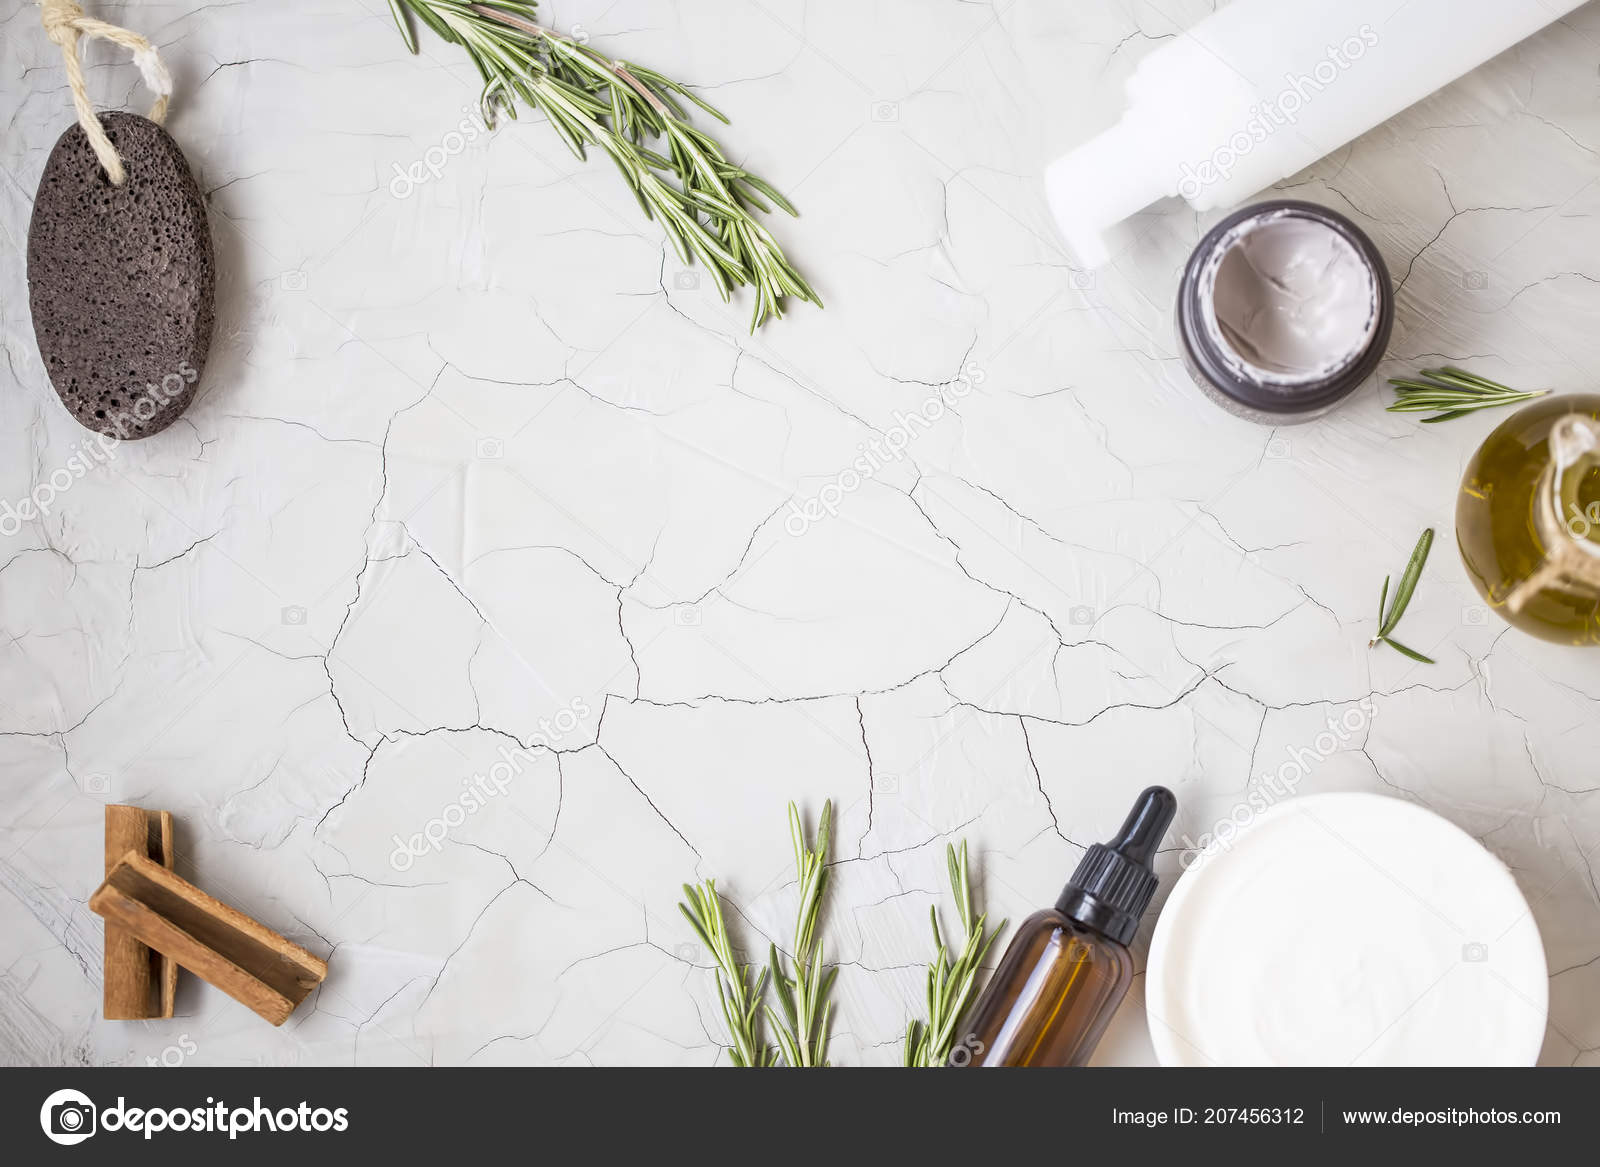 Organic Skincare Products Flatlay Oil Bottle Pumice Olive Oil Tonic Stock Photo C Marrakeshh 207456312